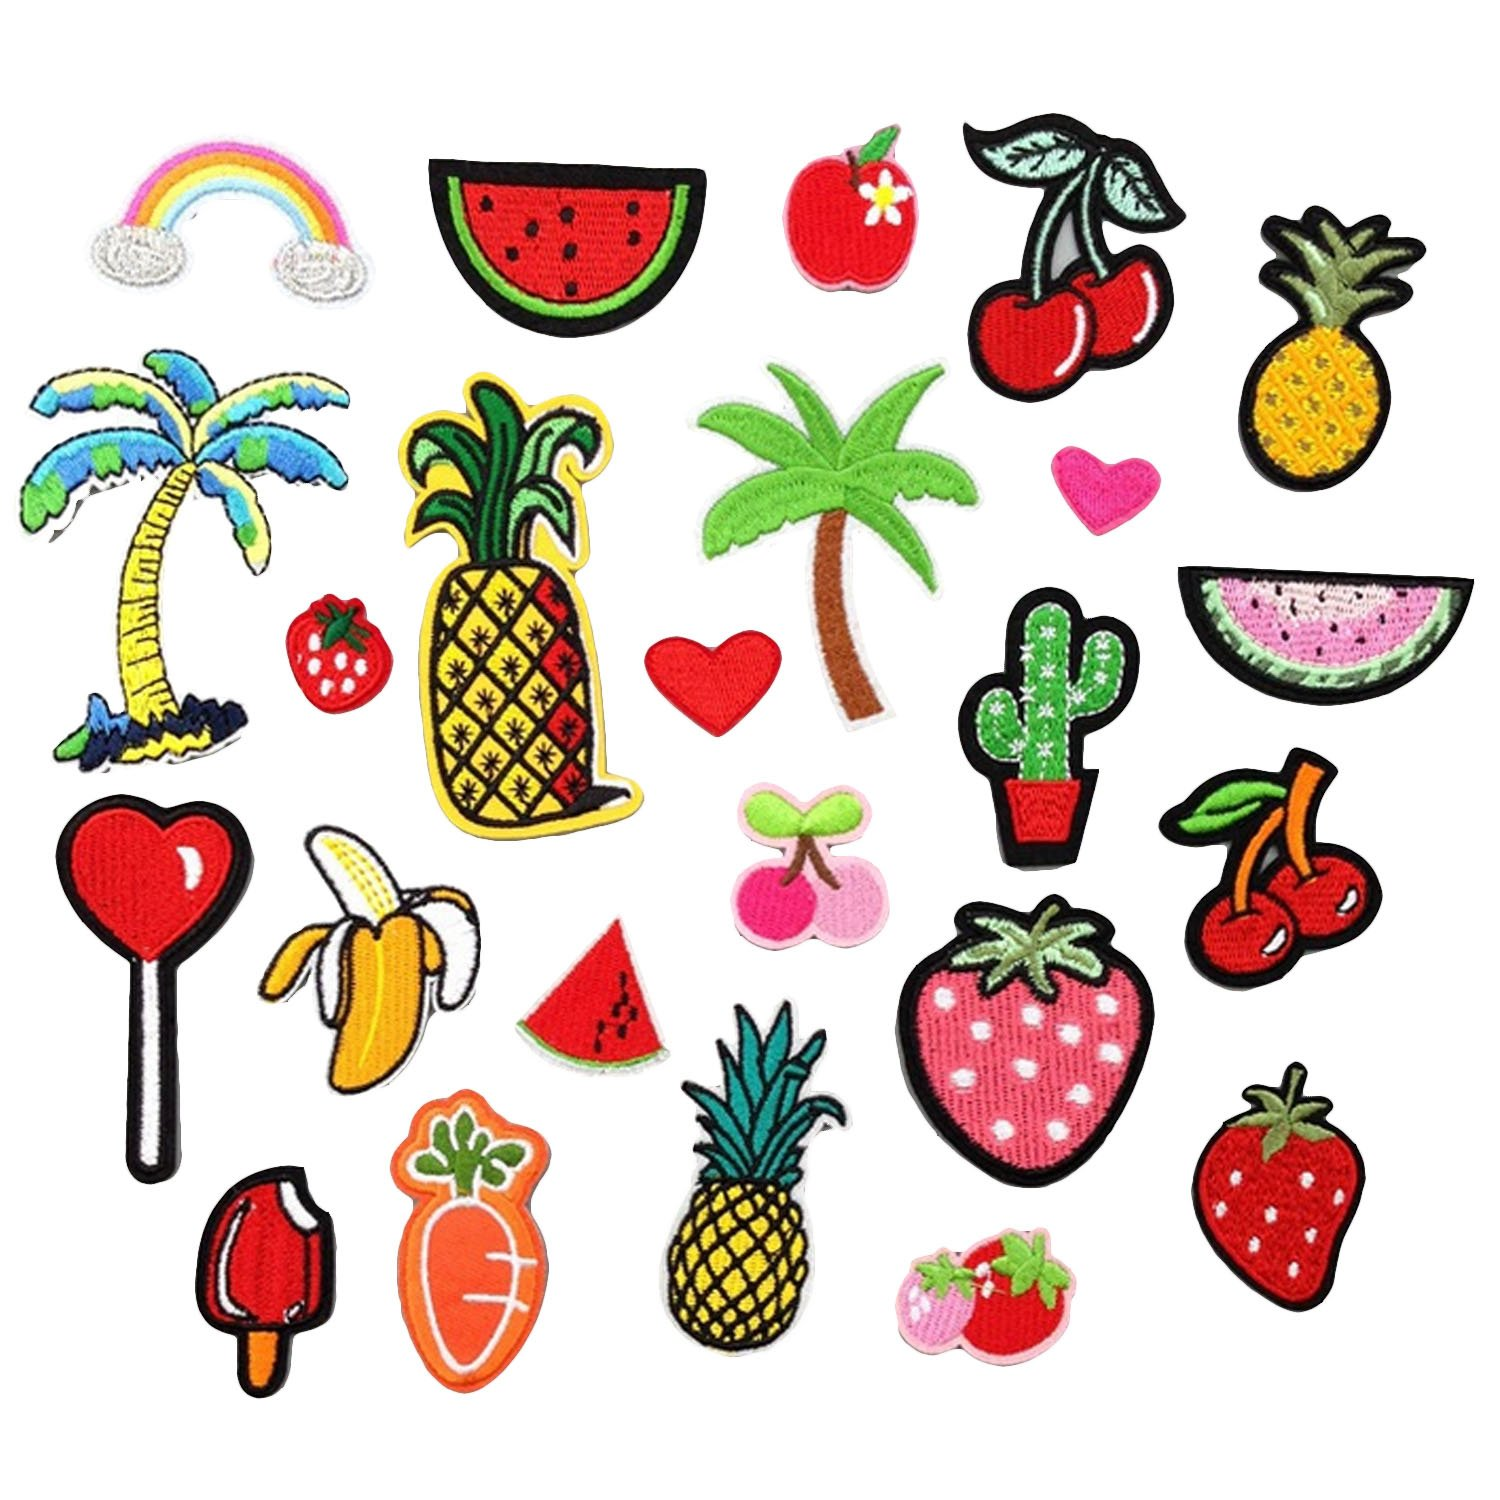 24 PCS Funny DIY Clothes Patches Embroidery Cartoon Fruits Banana Cactus Strawberry Patches for T-shirt Jeans Clothing Bags Gosear